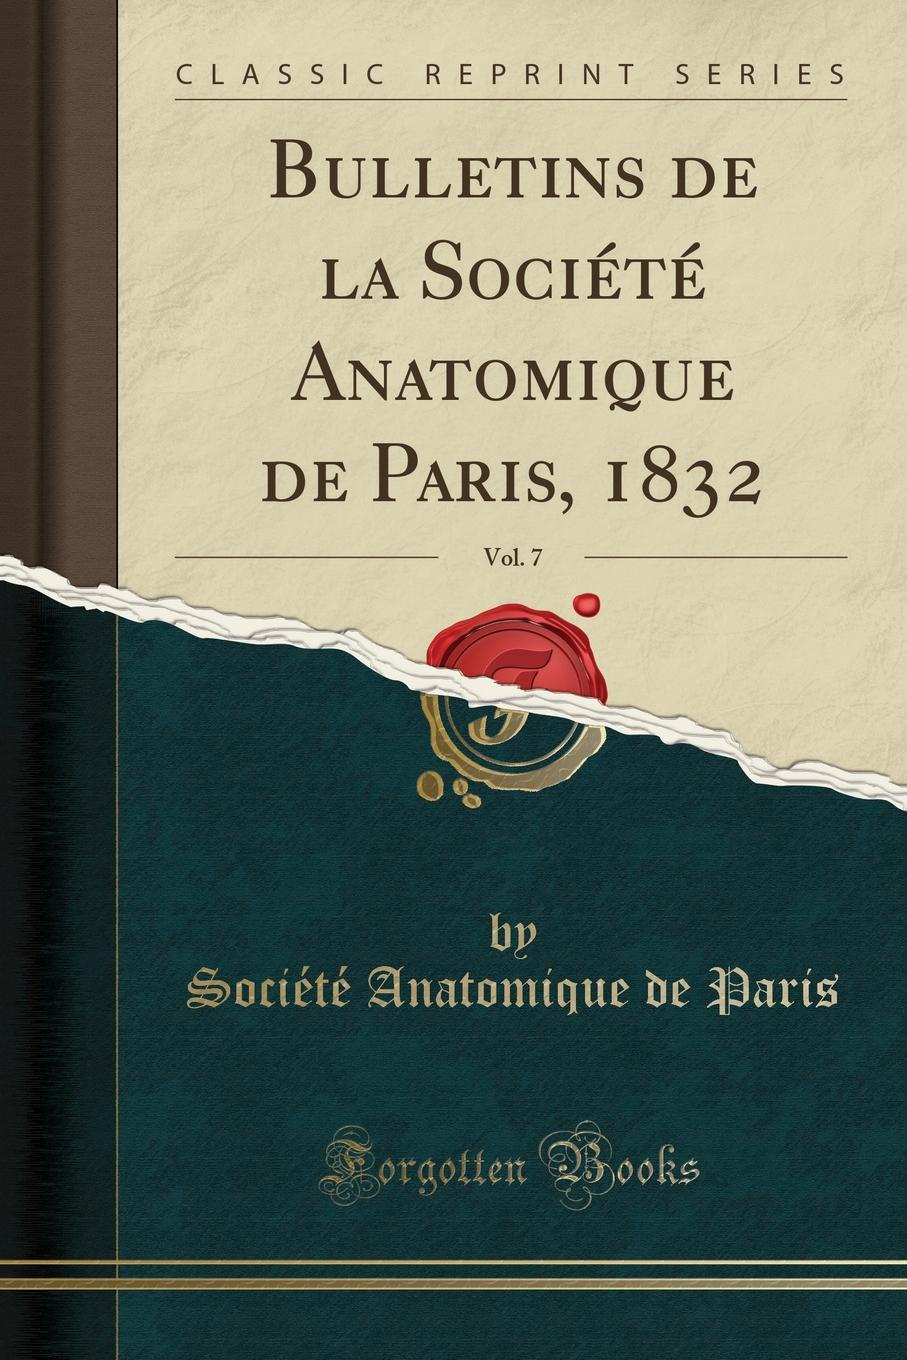 Société Anatomique de Paris Bulletins de la Societe Anatomique de Paris, 1832, Vol. 7 (Classic Reprint)